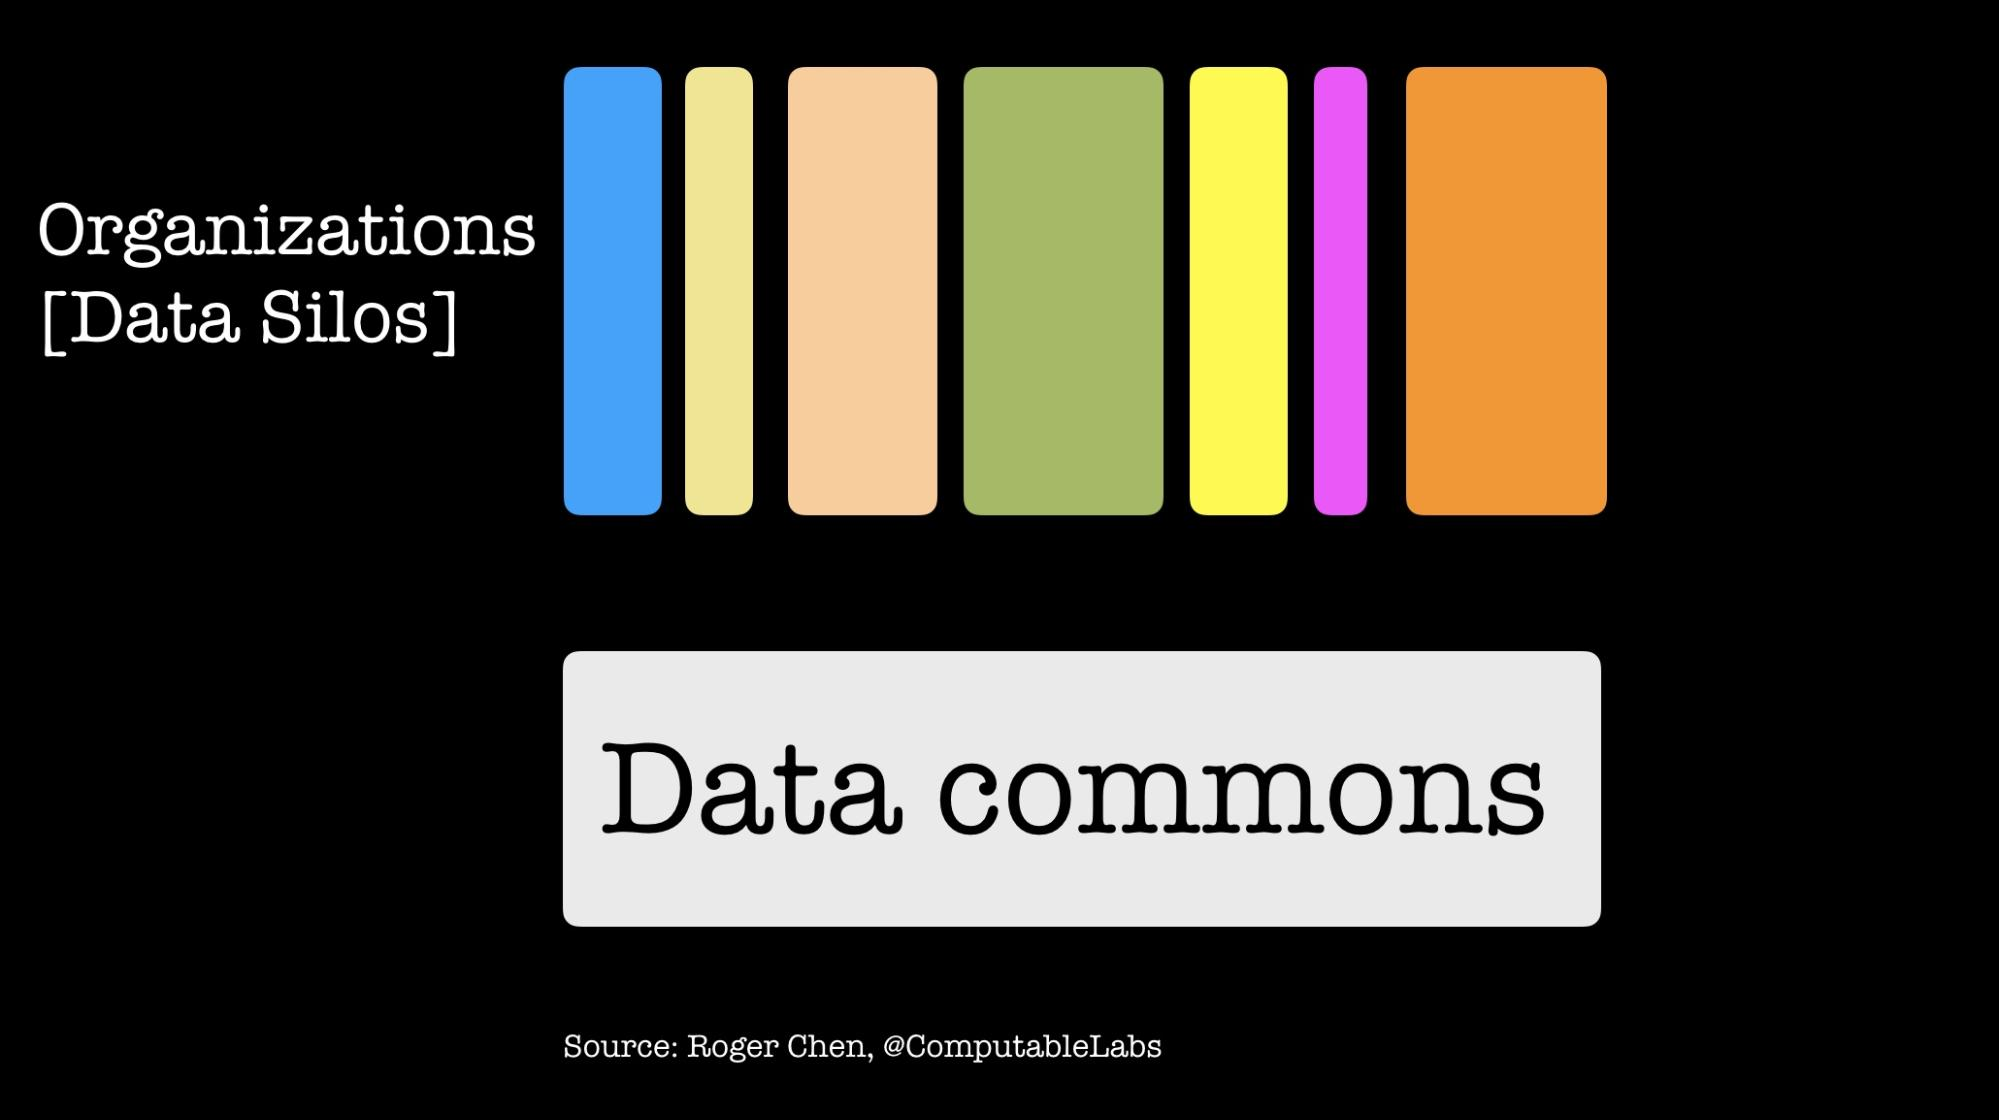 data commons